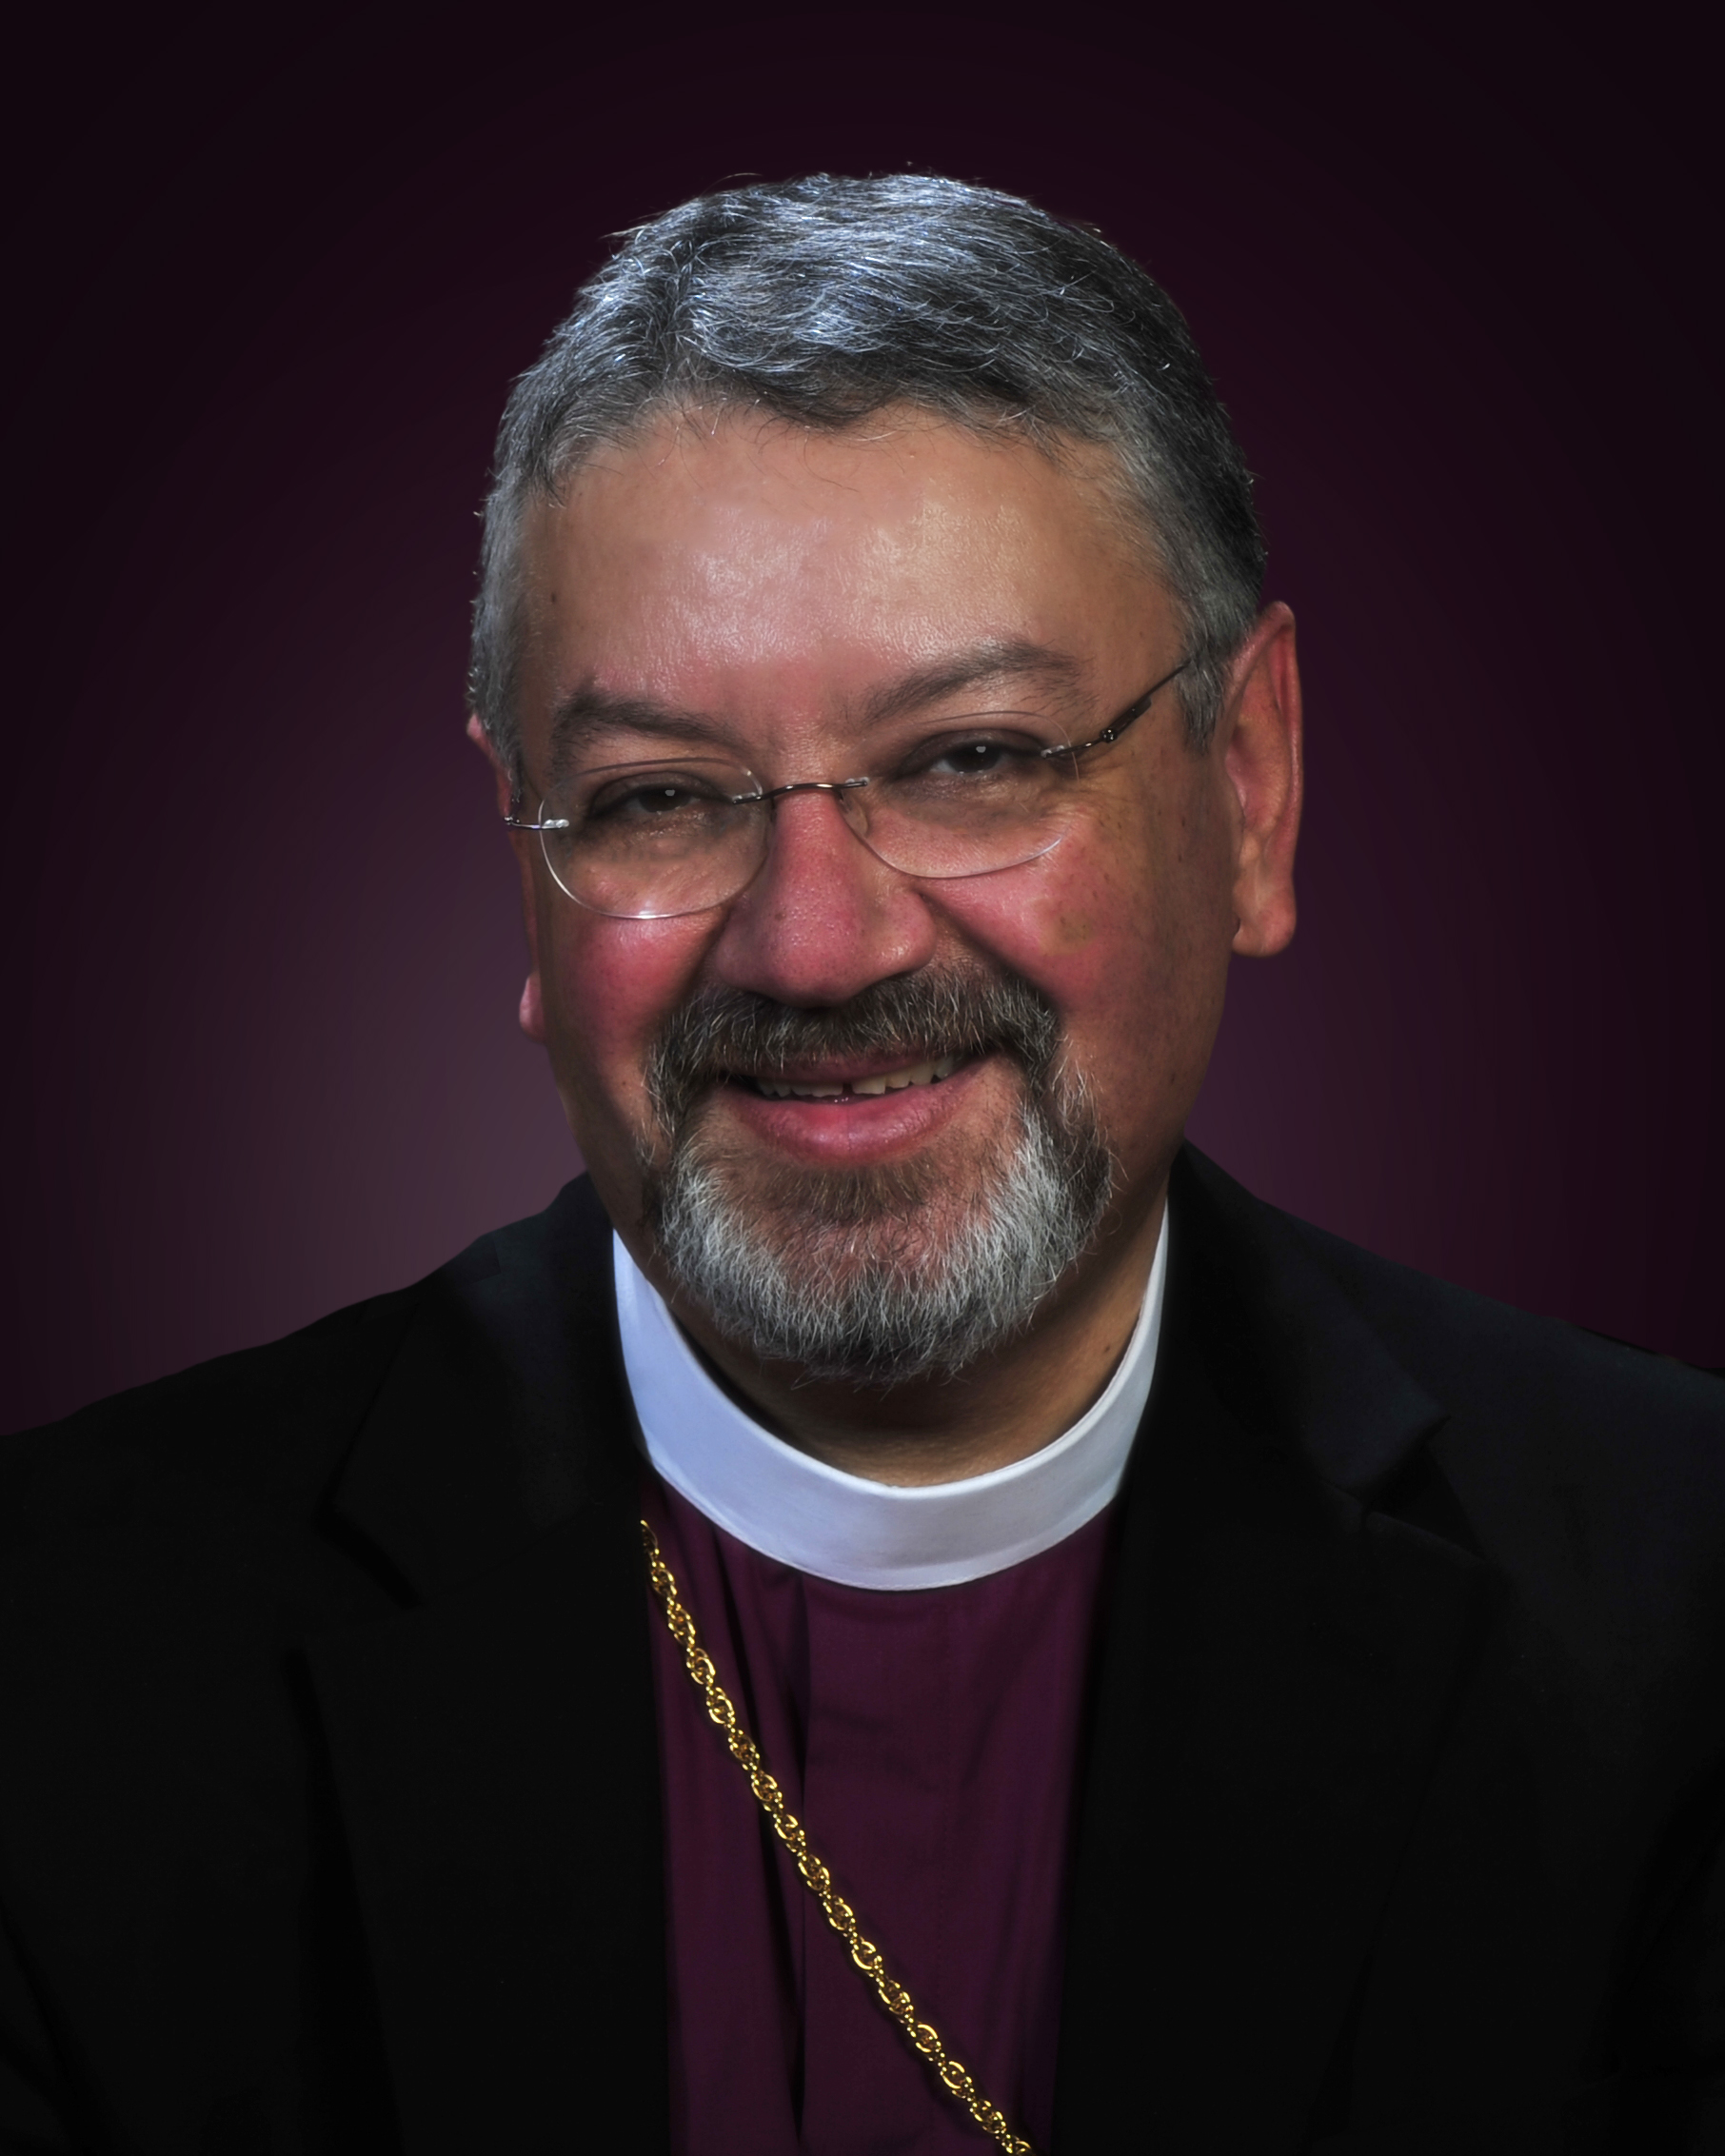 I Prayed And Then I Shot Him The Glamorous Church: Diocese Of Springfield